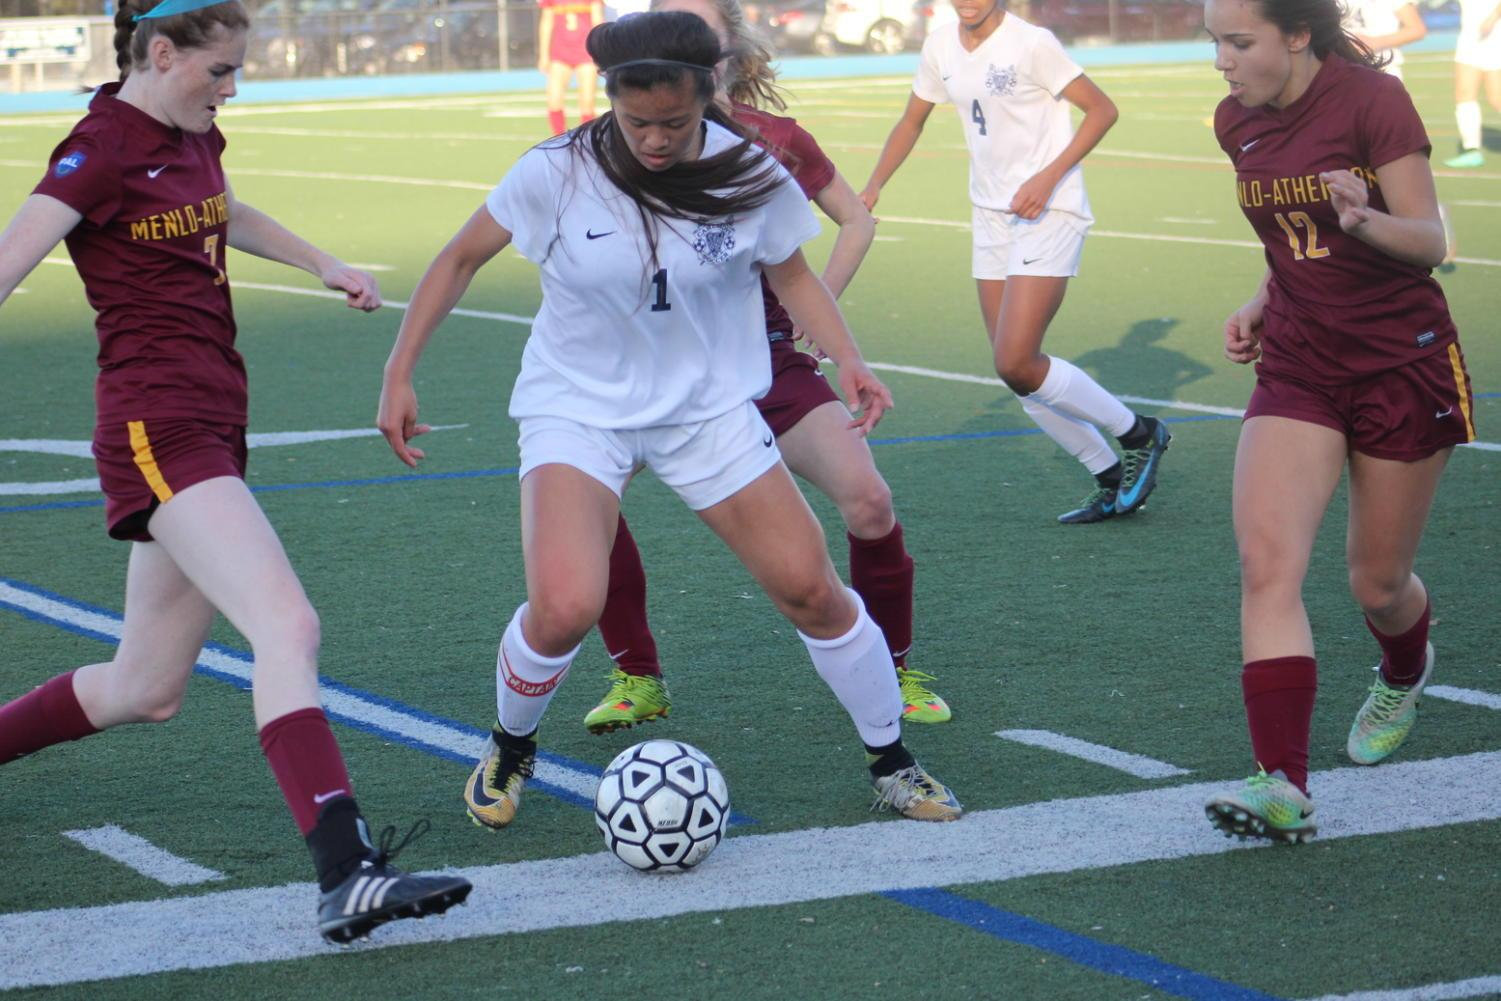 Samantha Phan defends the ball against the Bears.